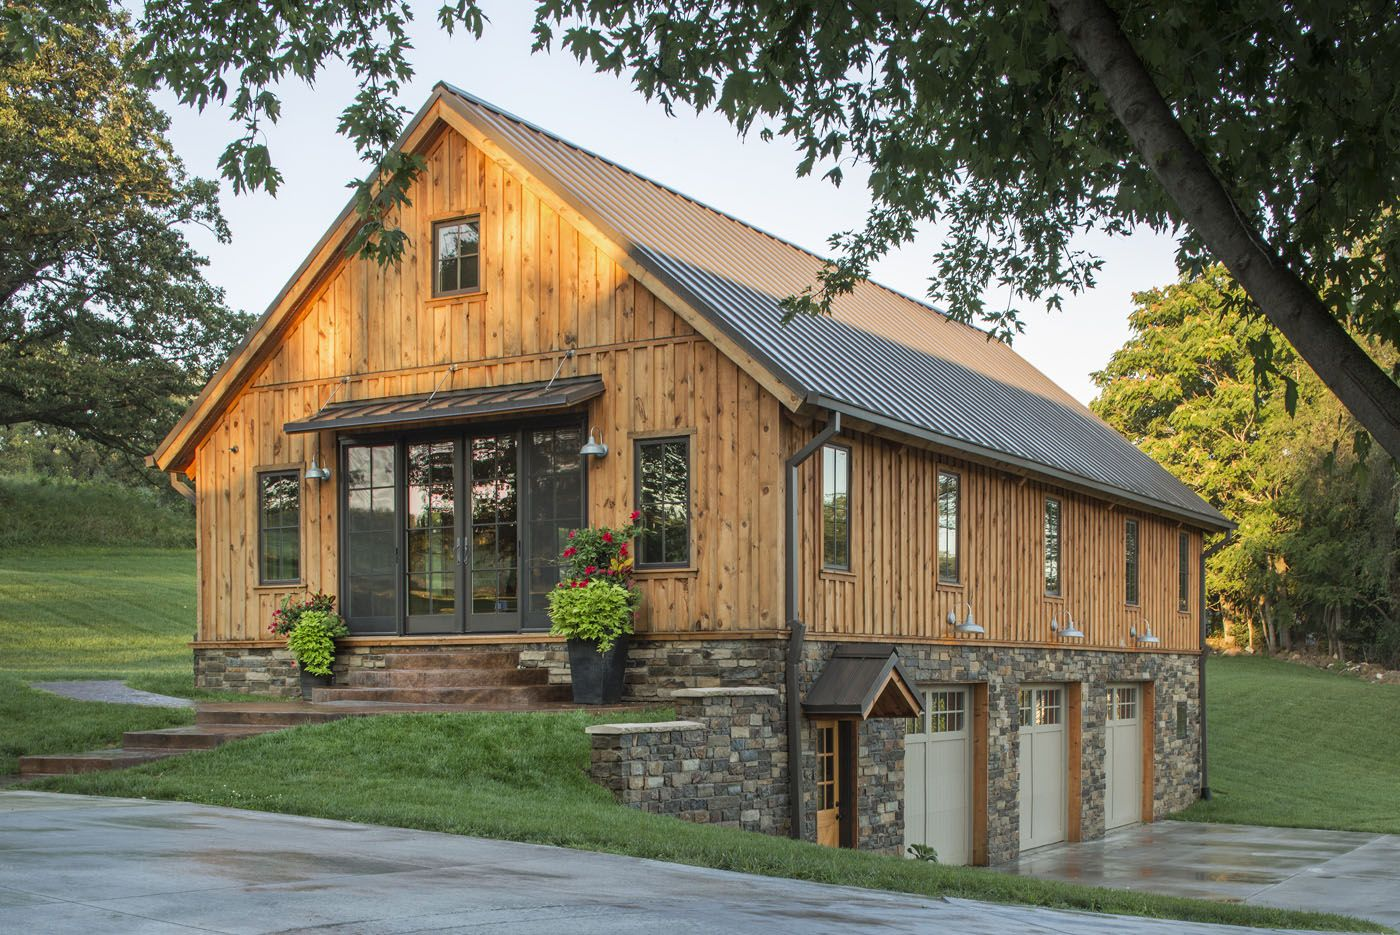 Gorgeous Wood Barn Home With 3 Car Garage Below We Love All The Detail Sand Creek Post Beam Pole Barn House Plans Pole Barn Homes Garage House